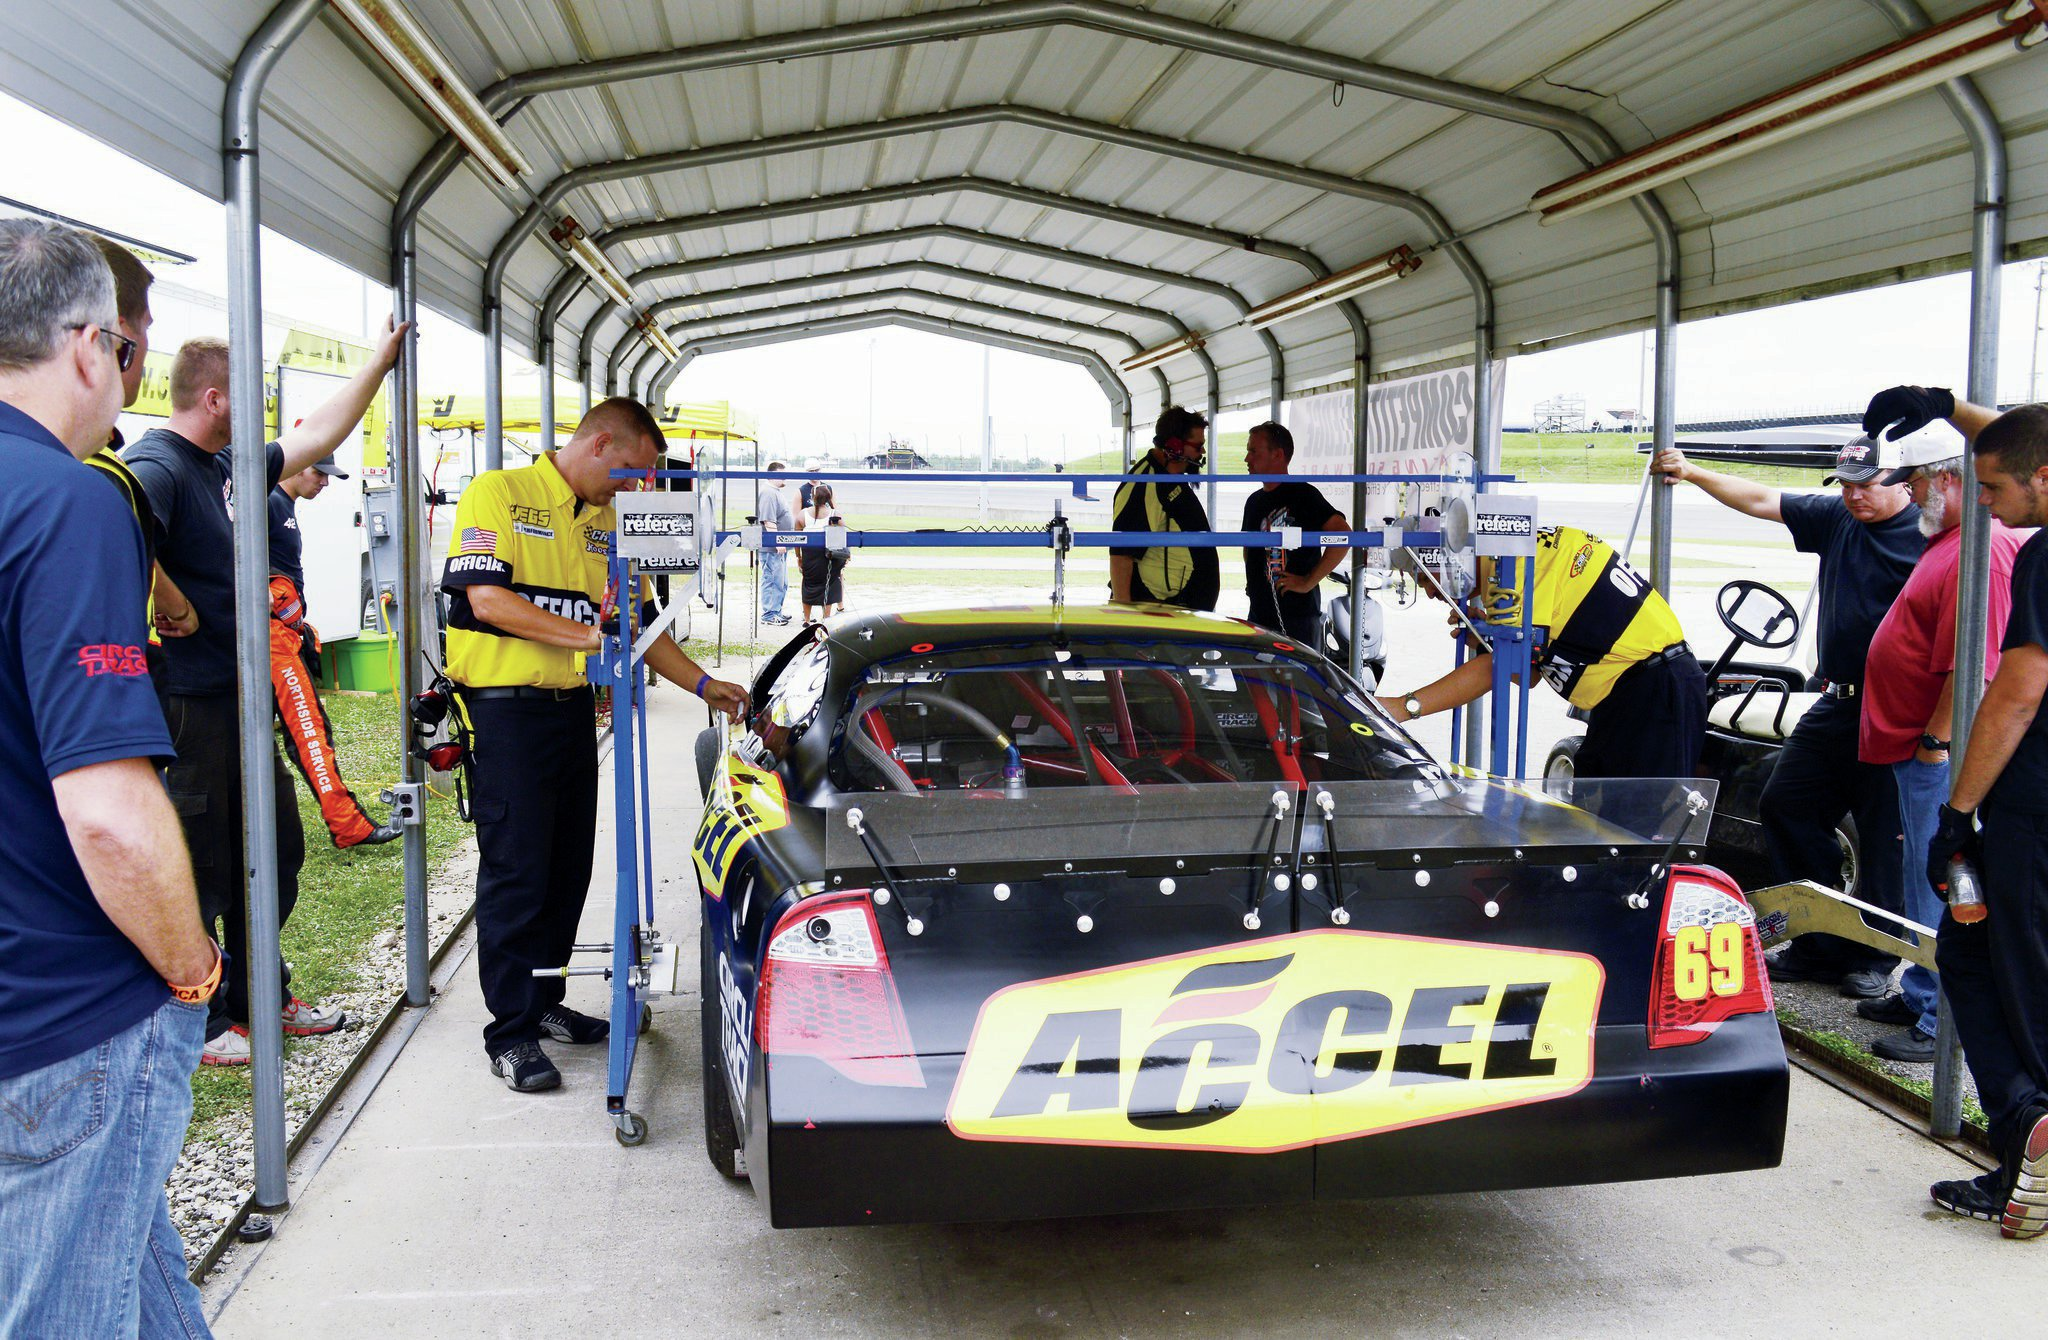 The officials of the ARCA/CRA Super Series do an admirable job of keeping the playing field level. Fortunately for us, we rolled through tech without a problem.